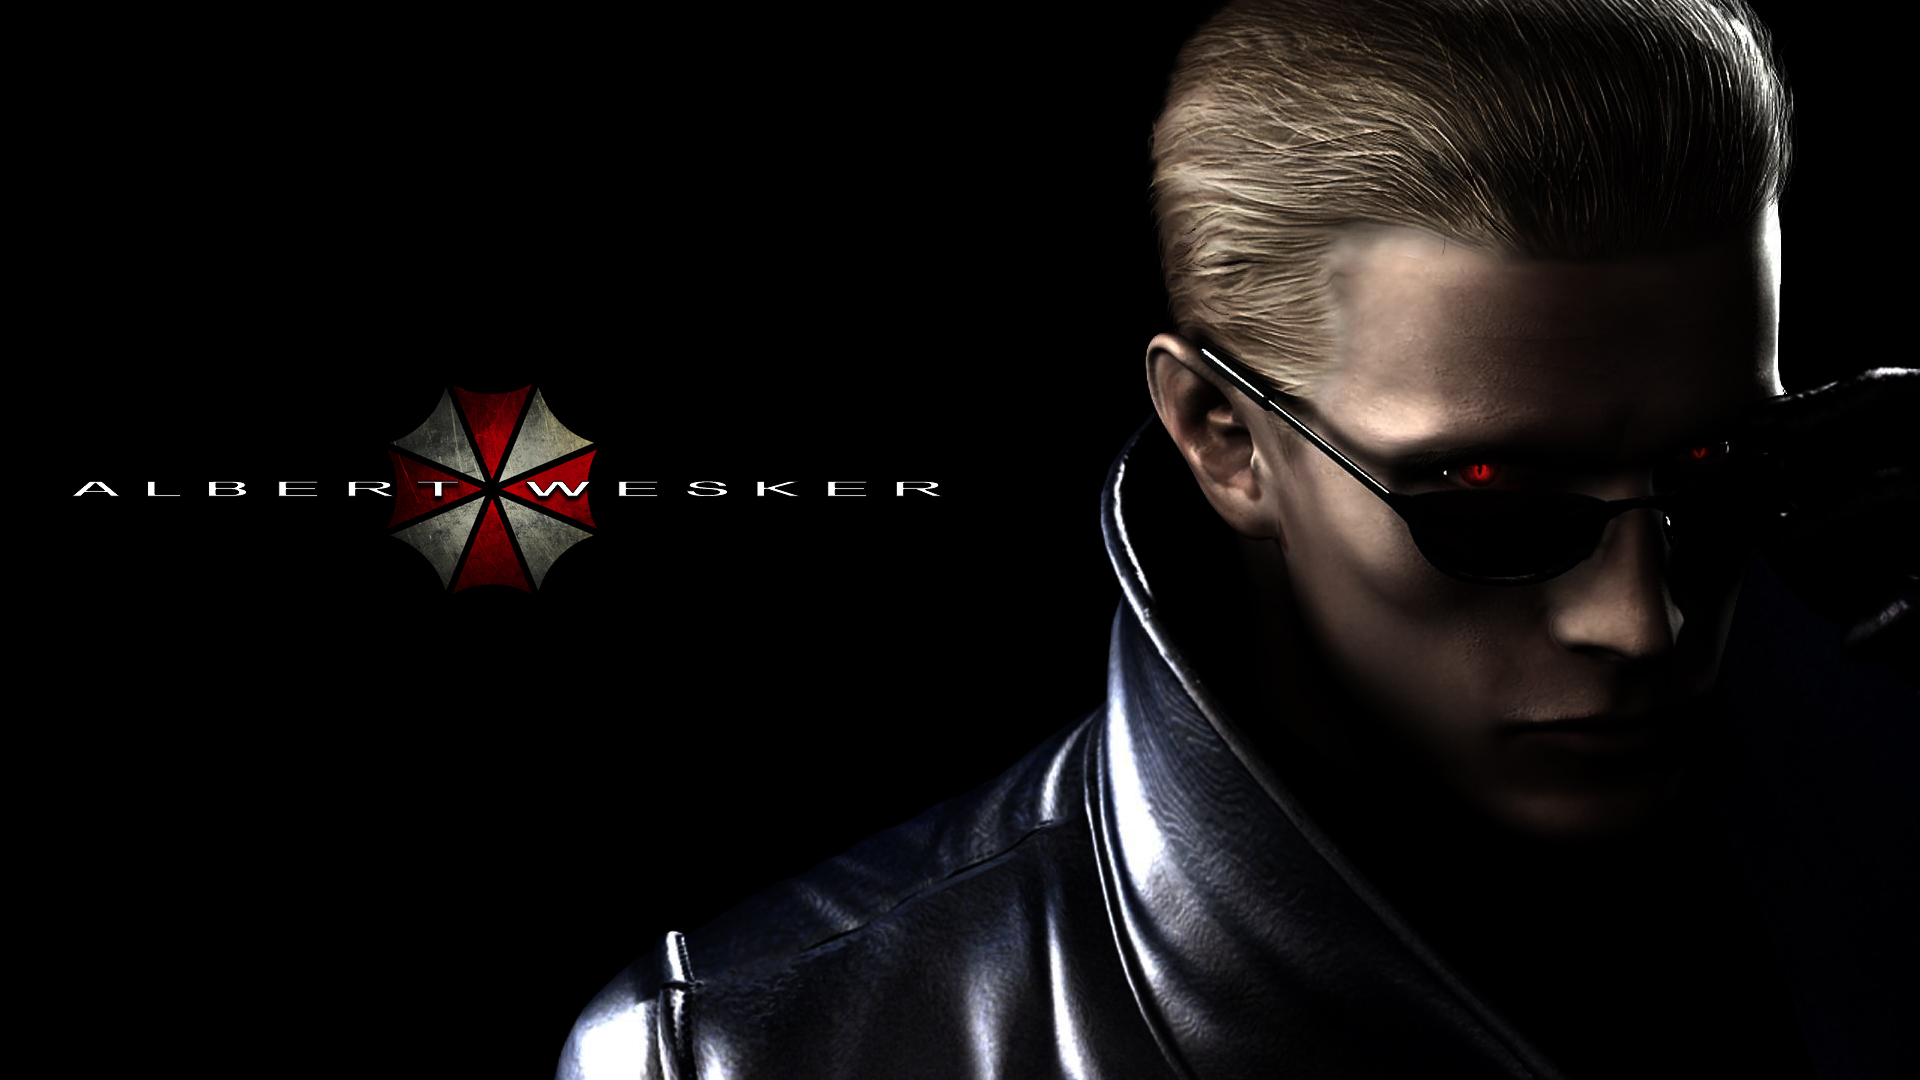 resient evil wesker - photo #15